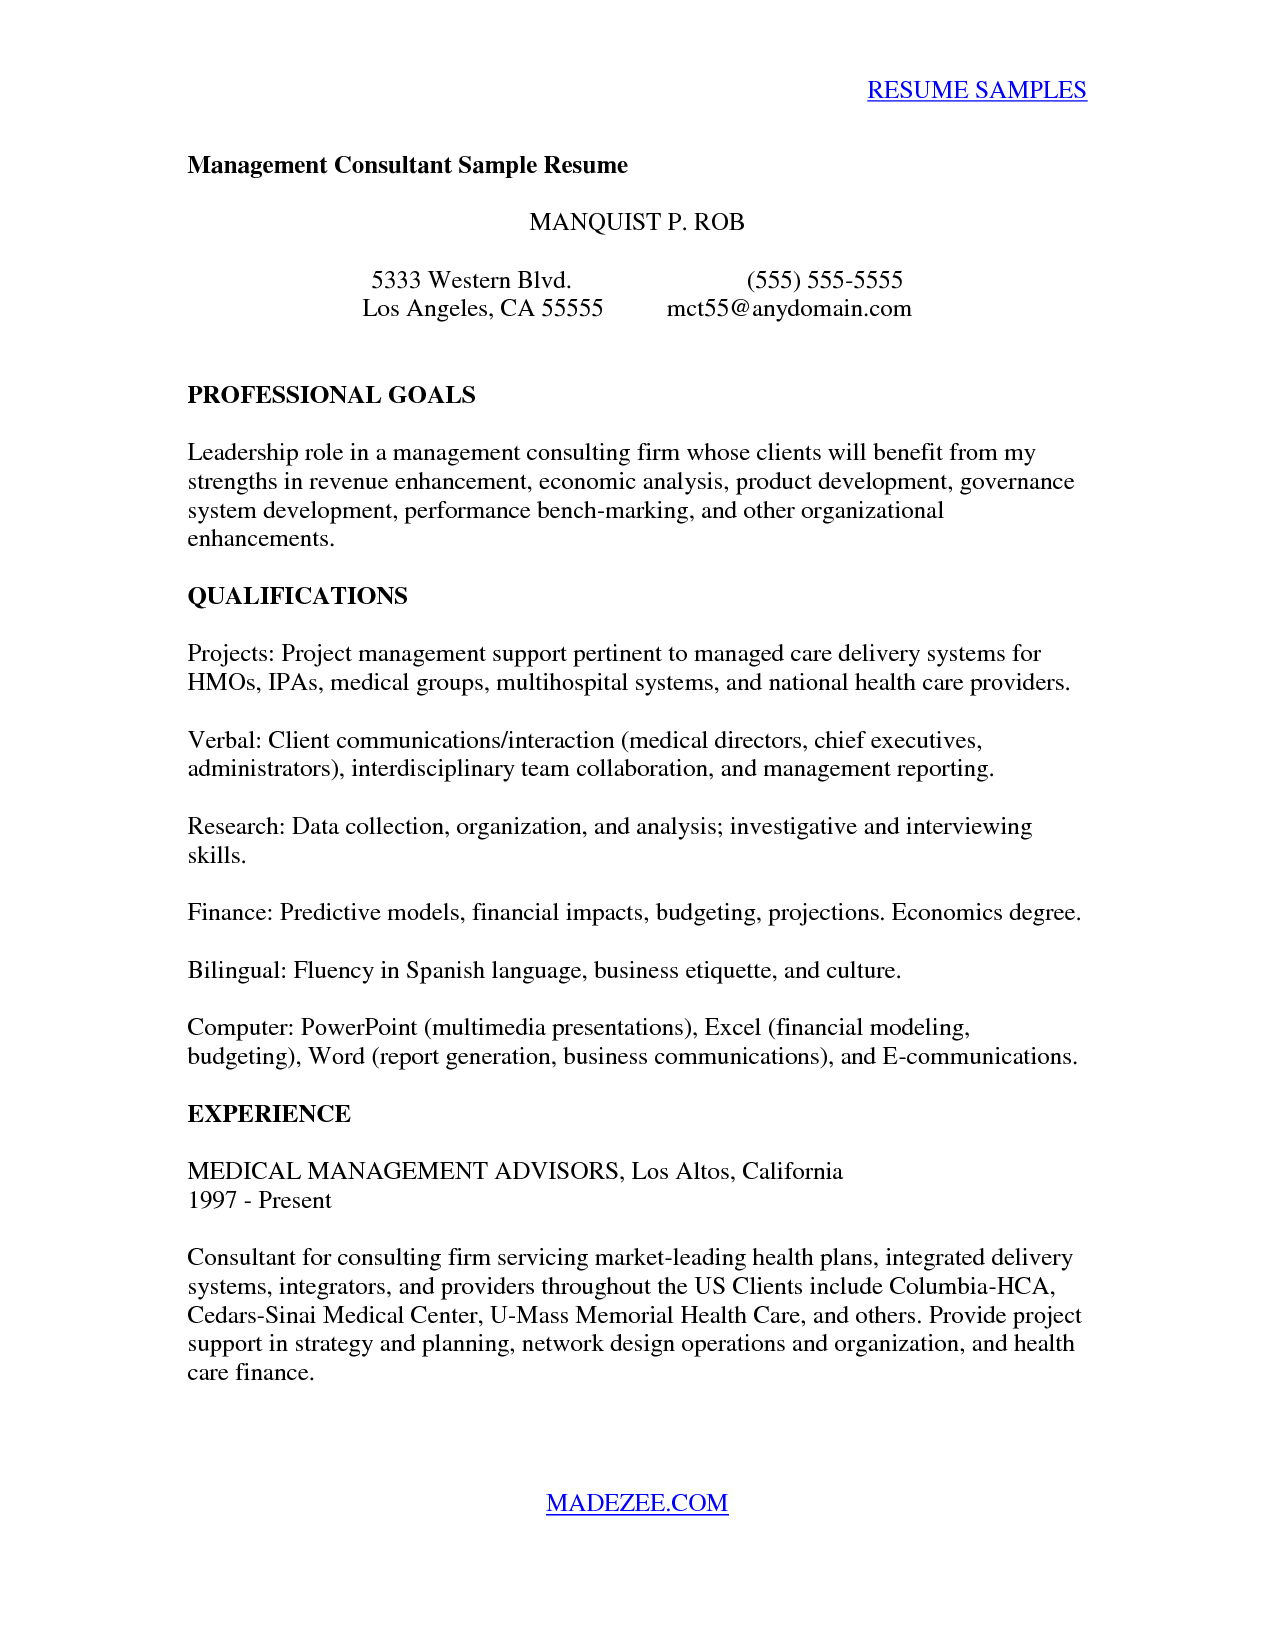 Business Presentation Letter Template - Consultant Sample Management Consulting Cover Letter Management